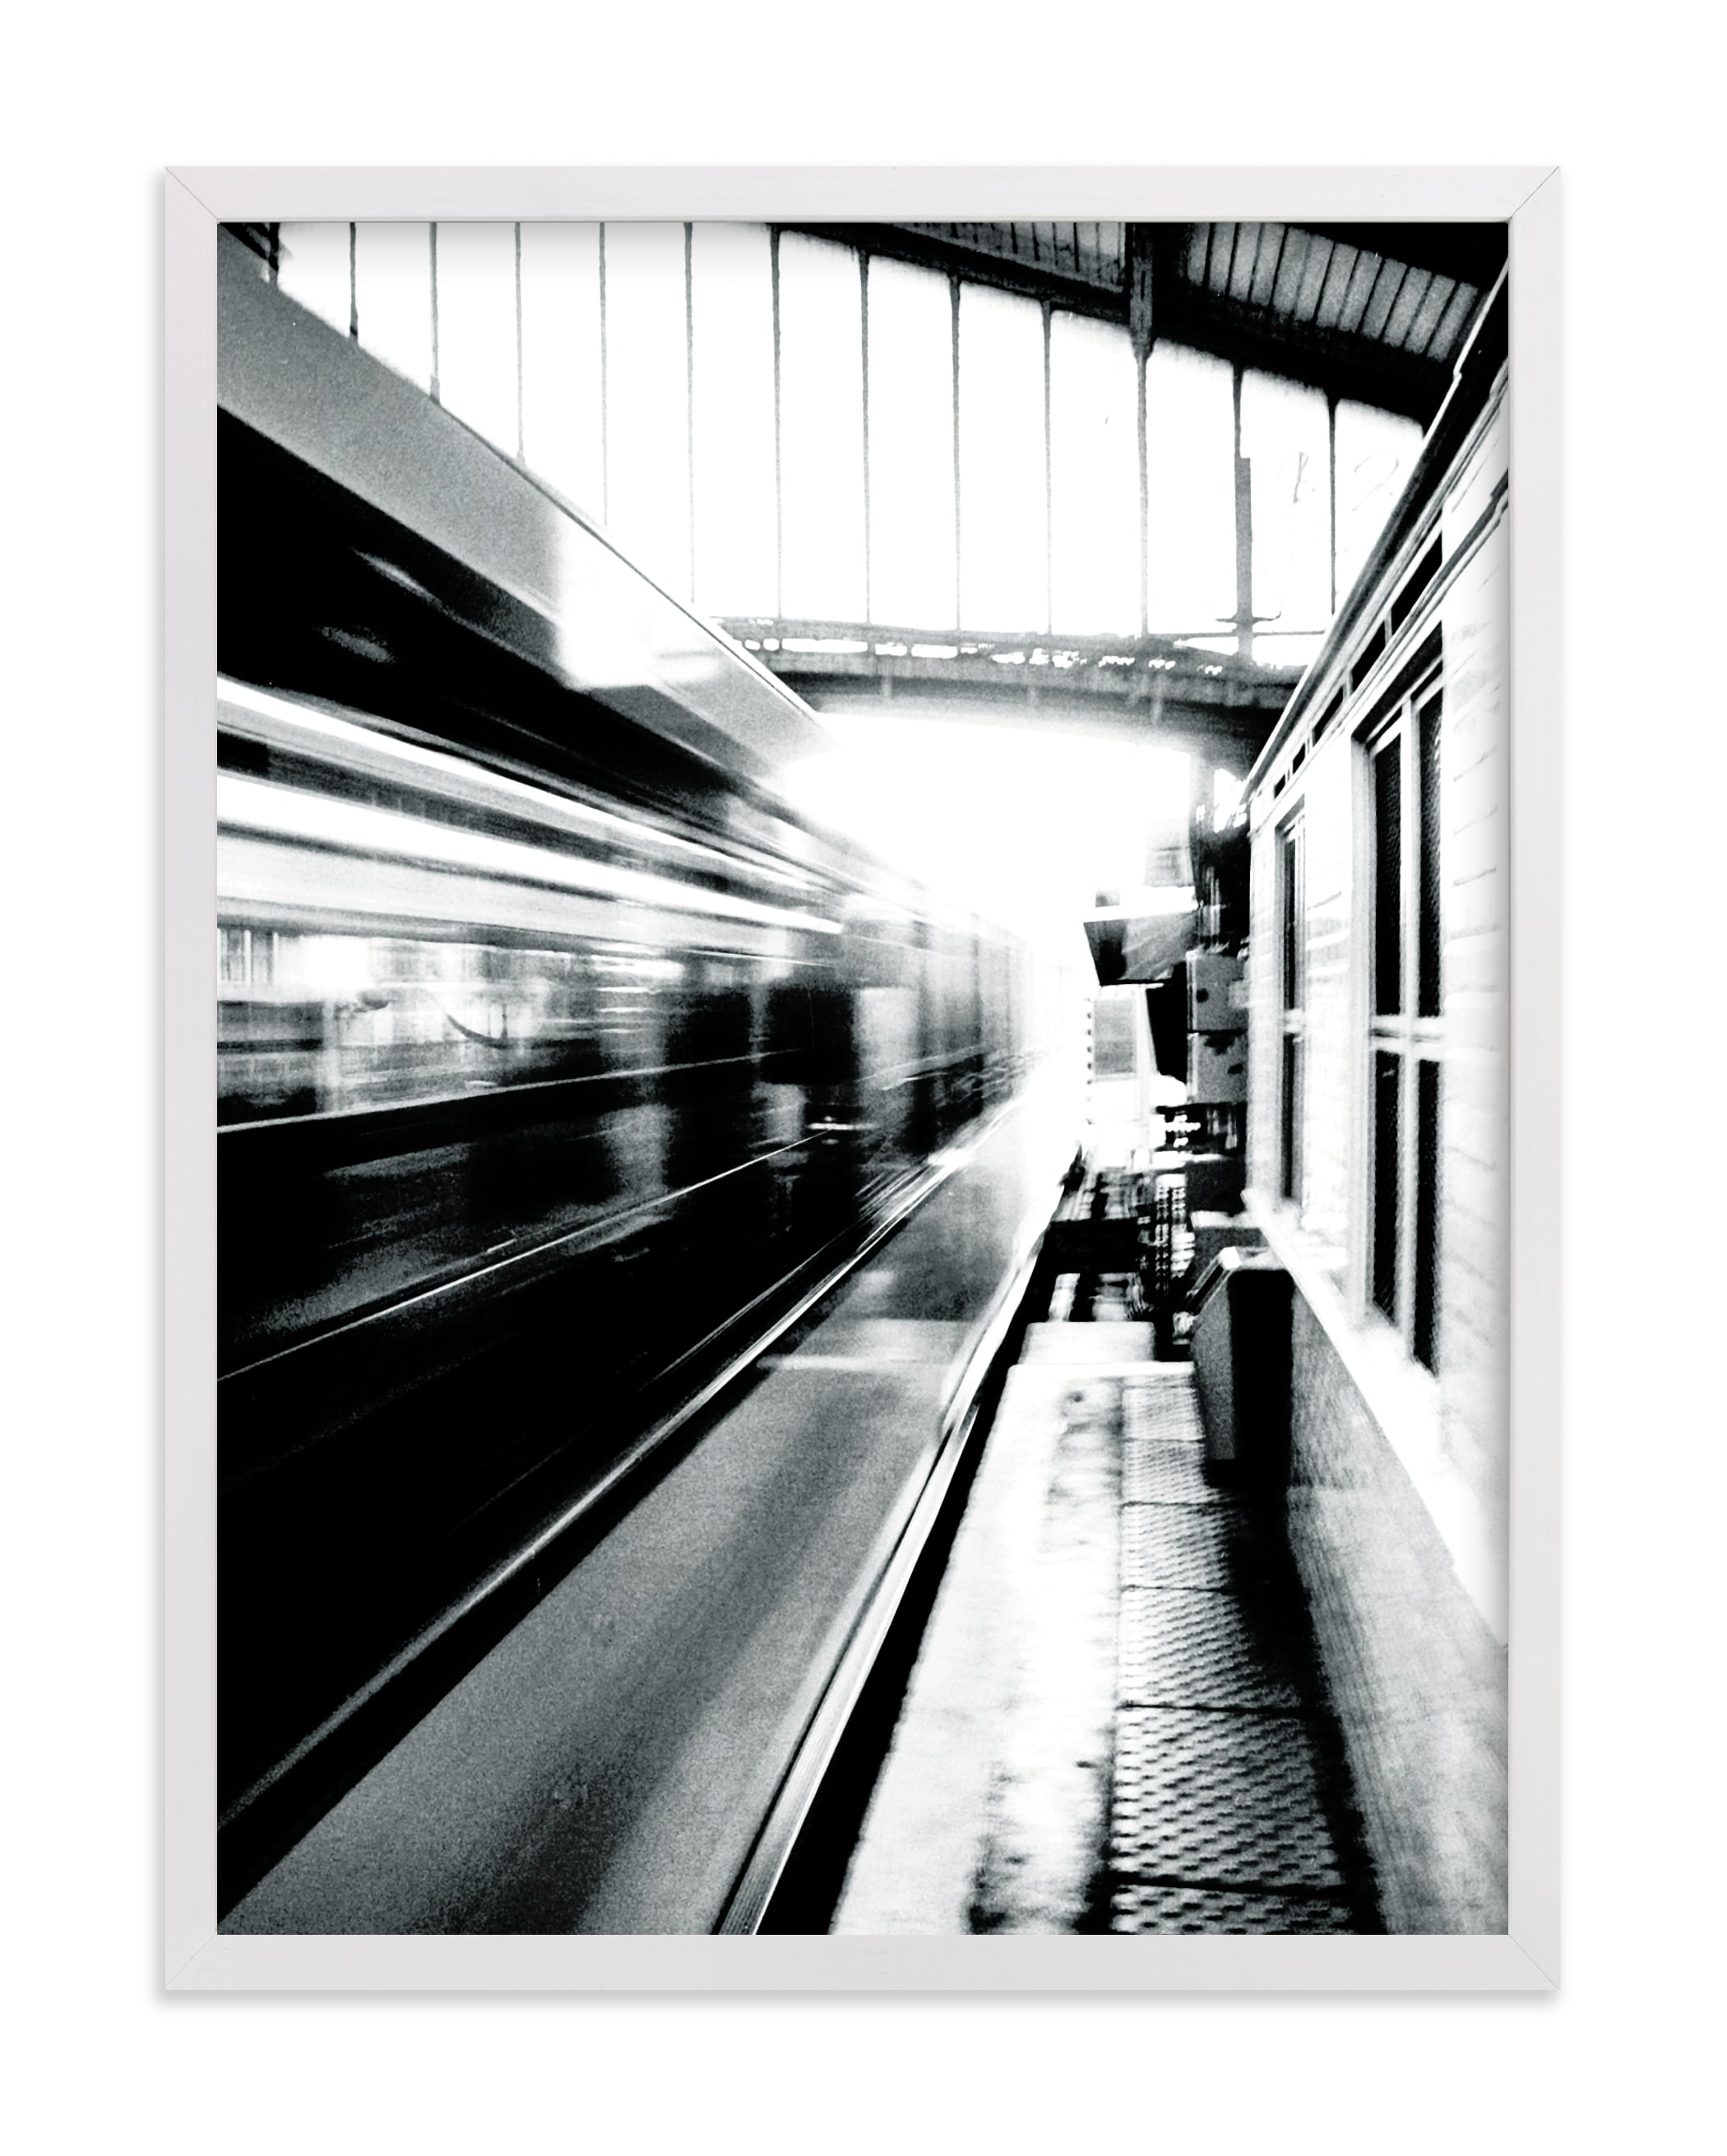 This is a black and white art by Marker Girl called Riding on the Metro.